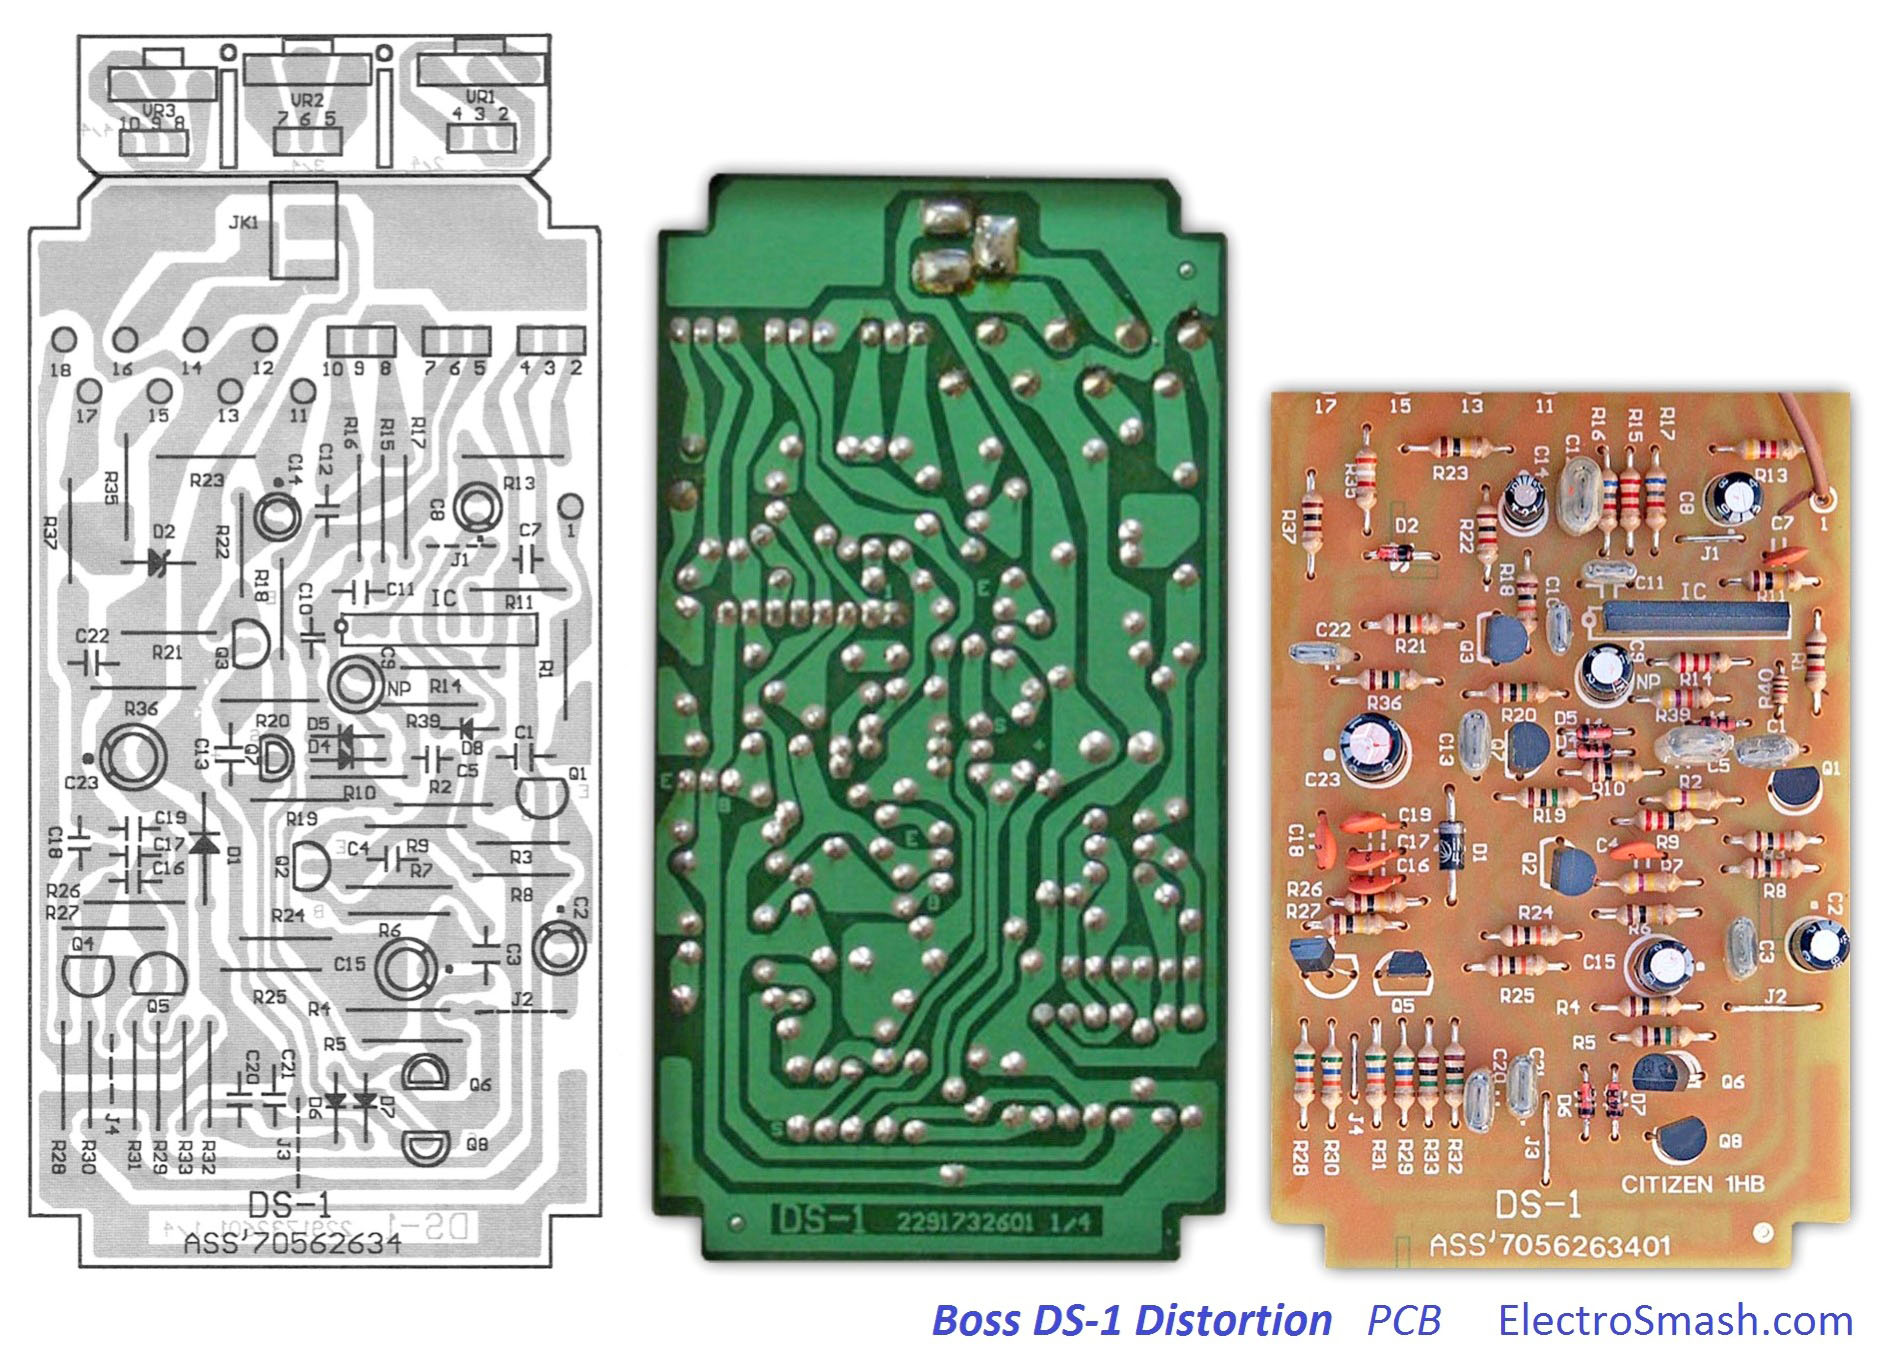 Electrosmash Boss Ds1 Distortion Analysis Dc 10 Wiring Diagram Pcb Small